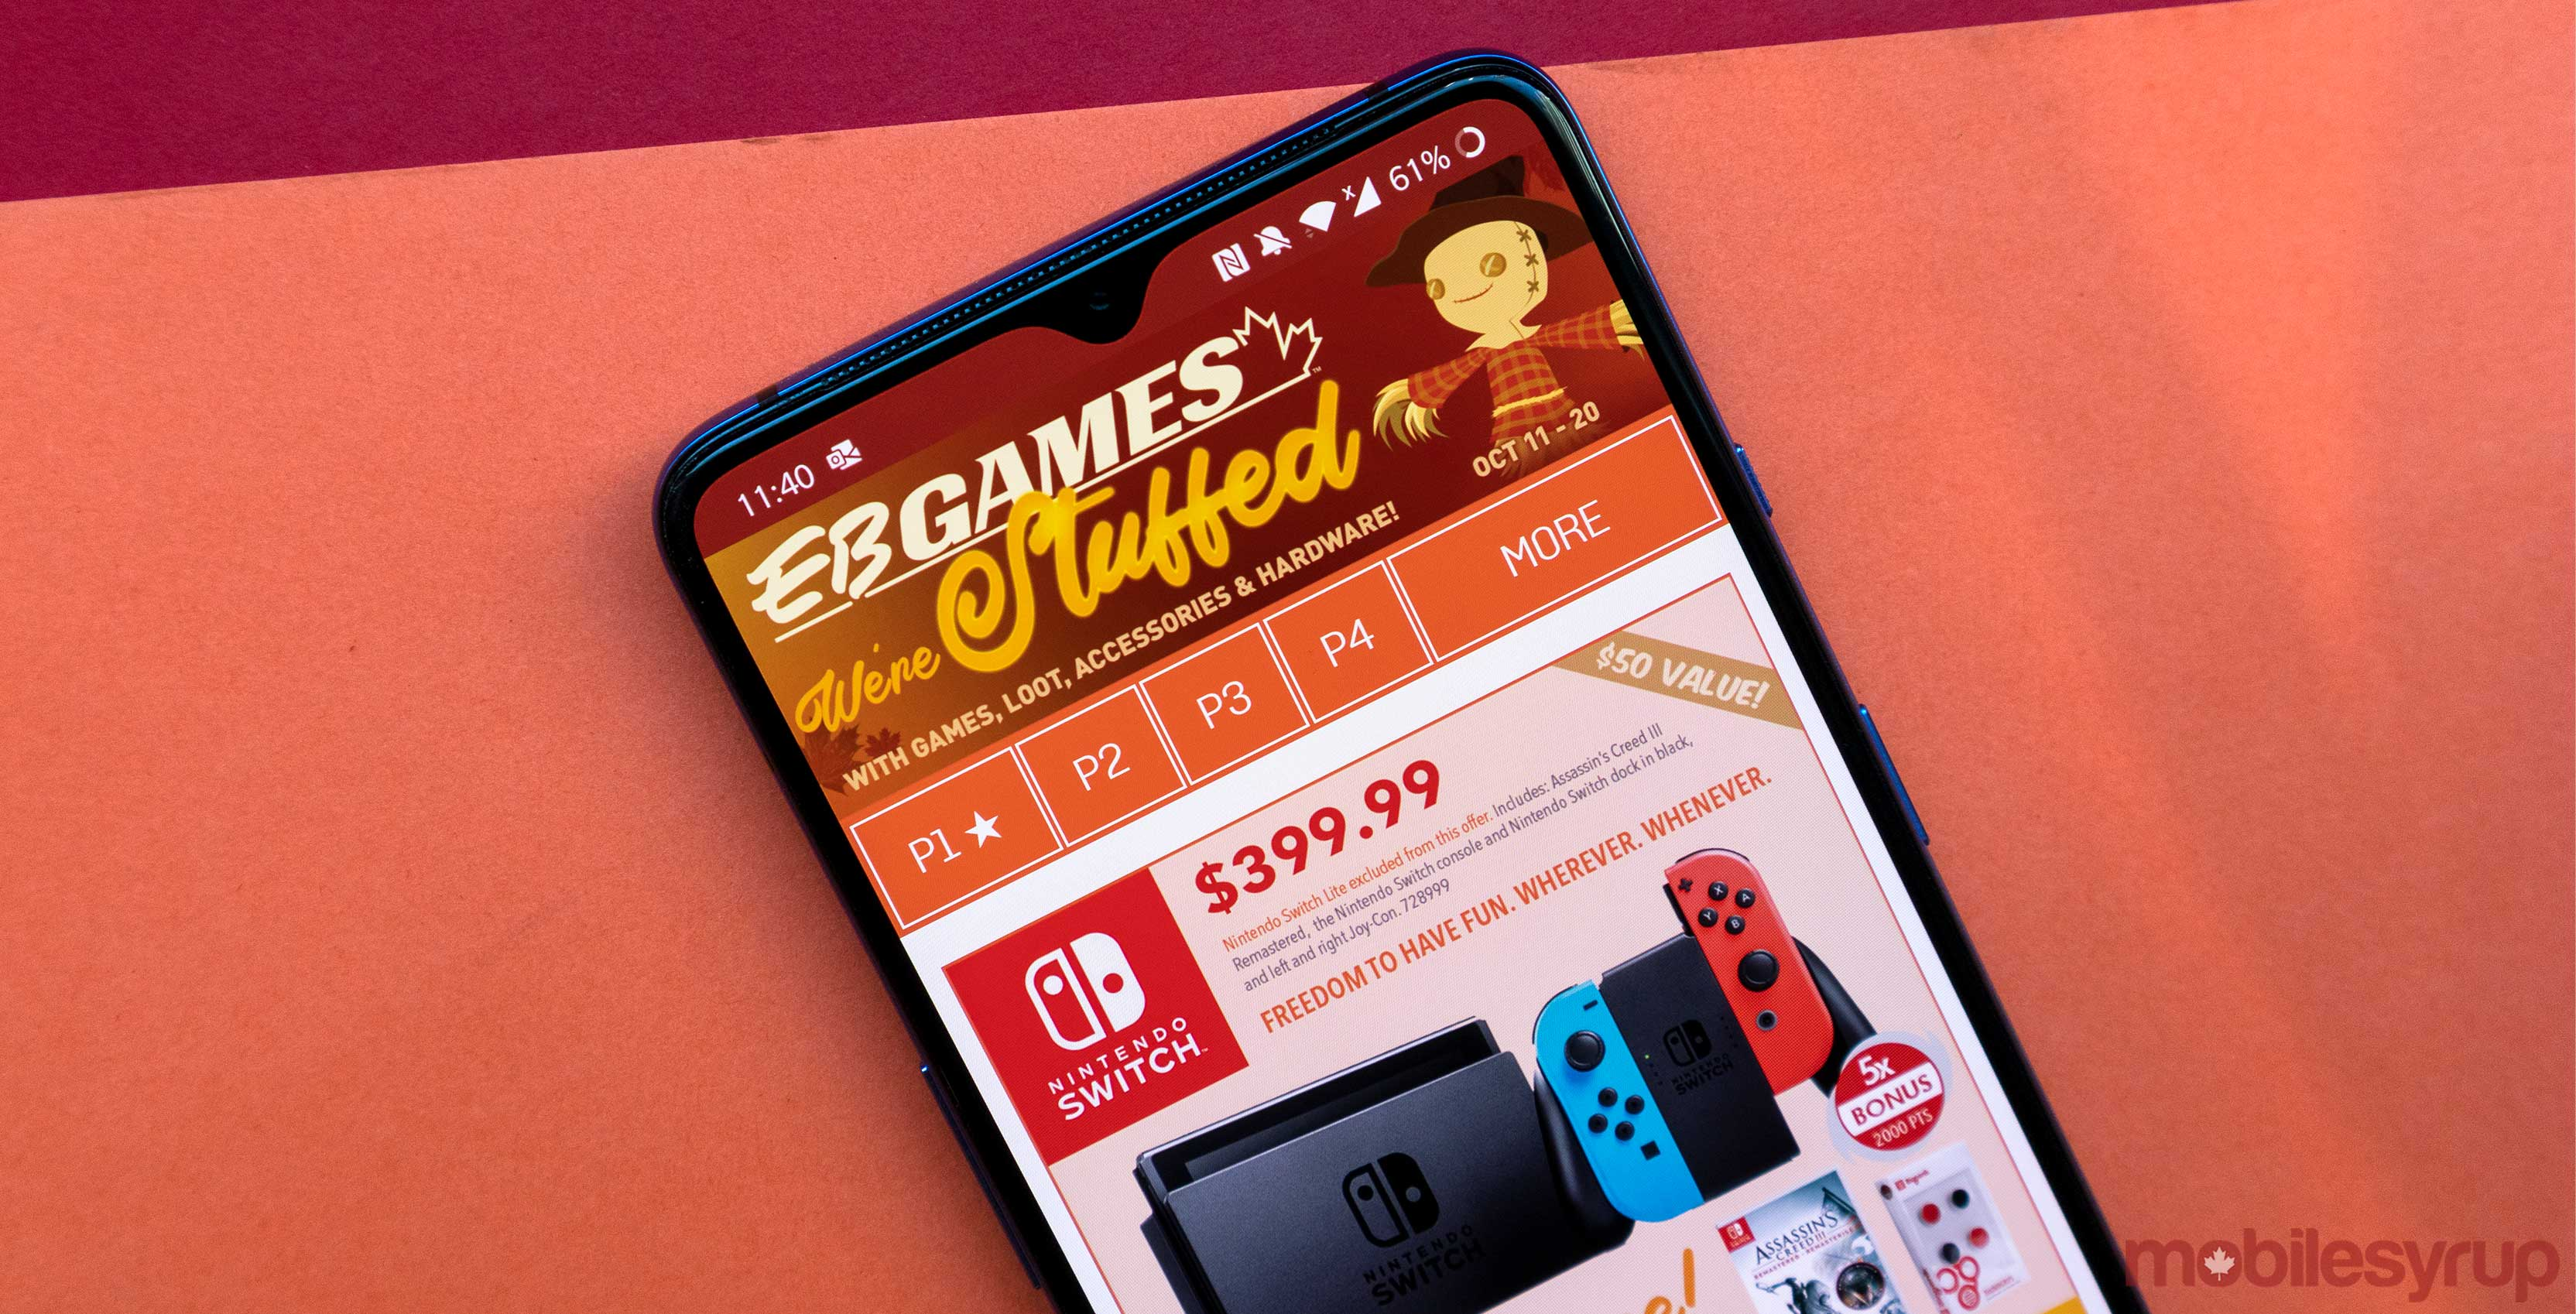 Eb Games Has Tons Of Video Game Deals For Canadian Thanksgiving